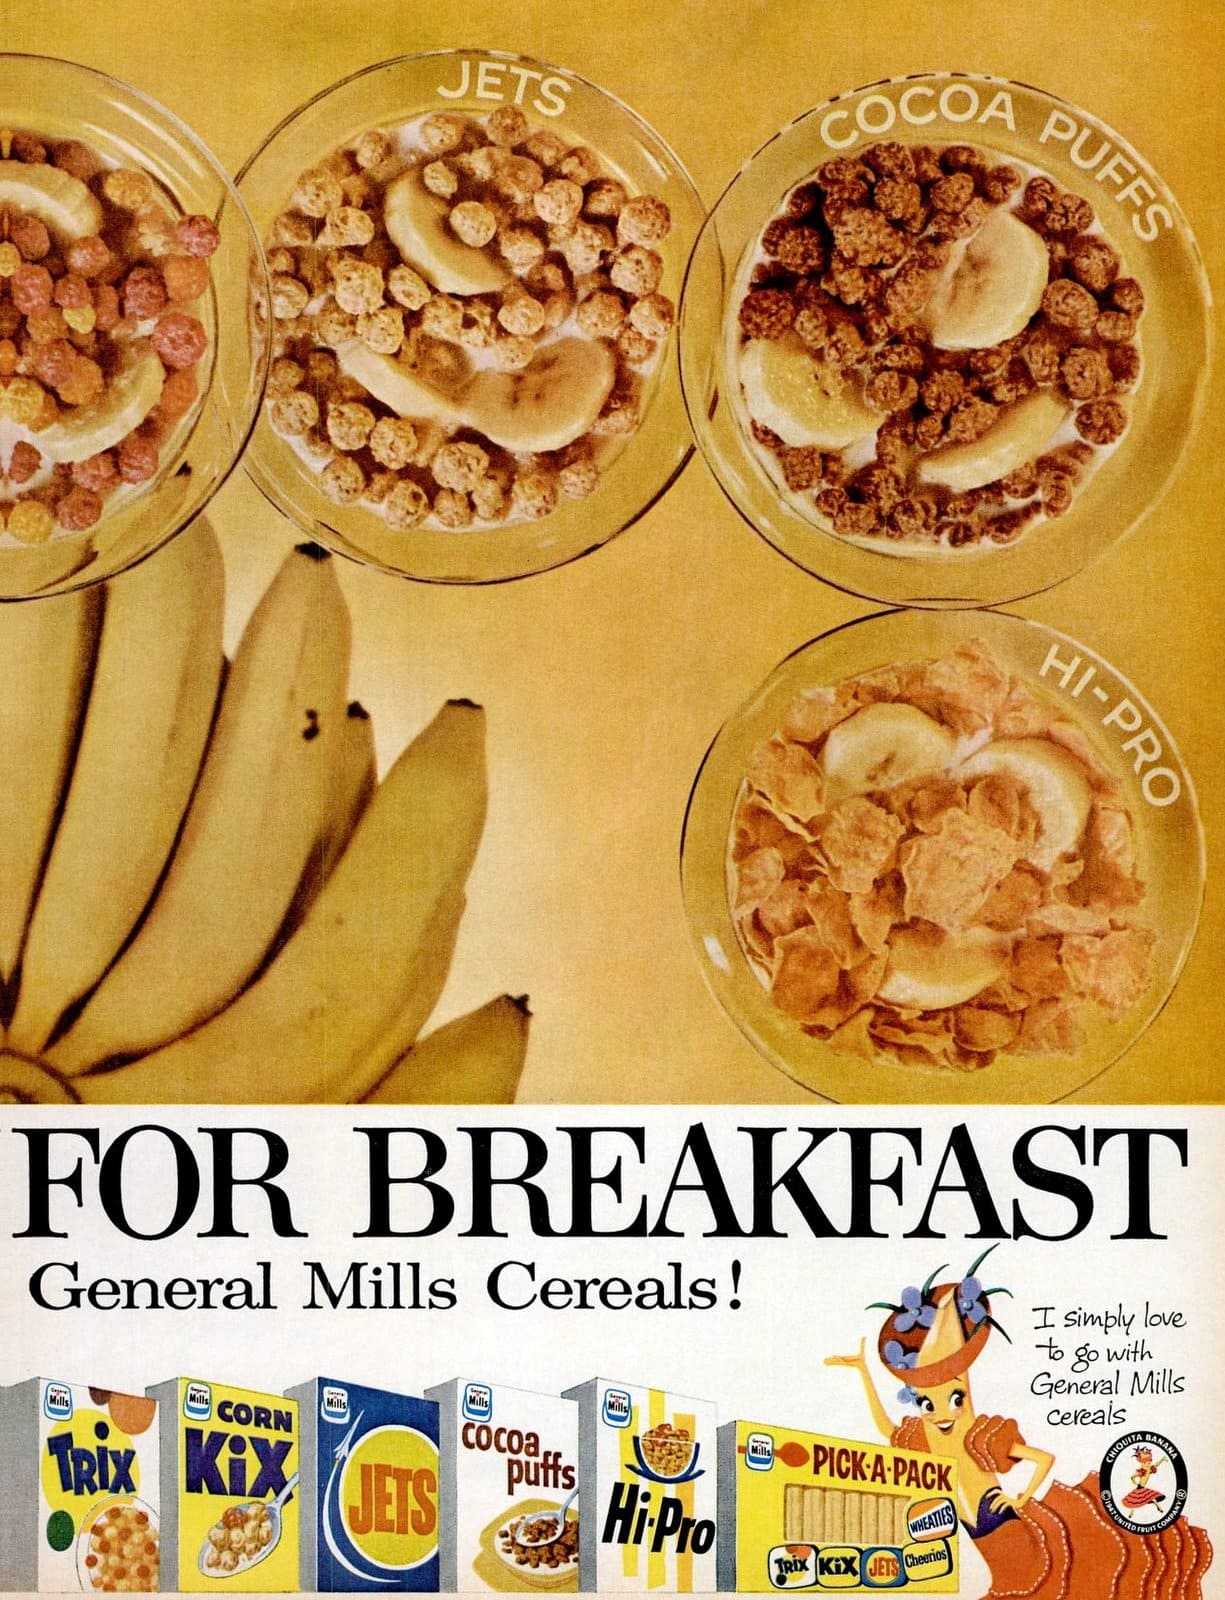 General Mills vintage cereal brands in 1959 (2)